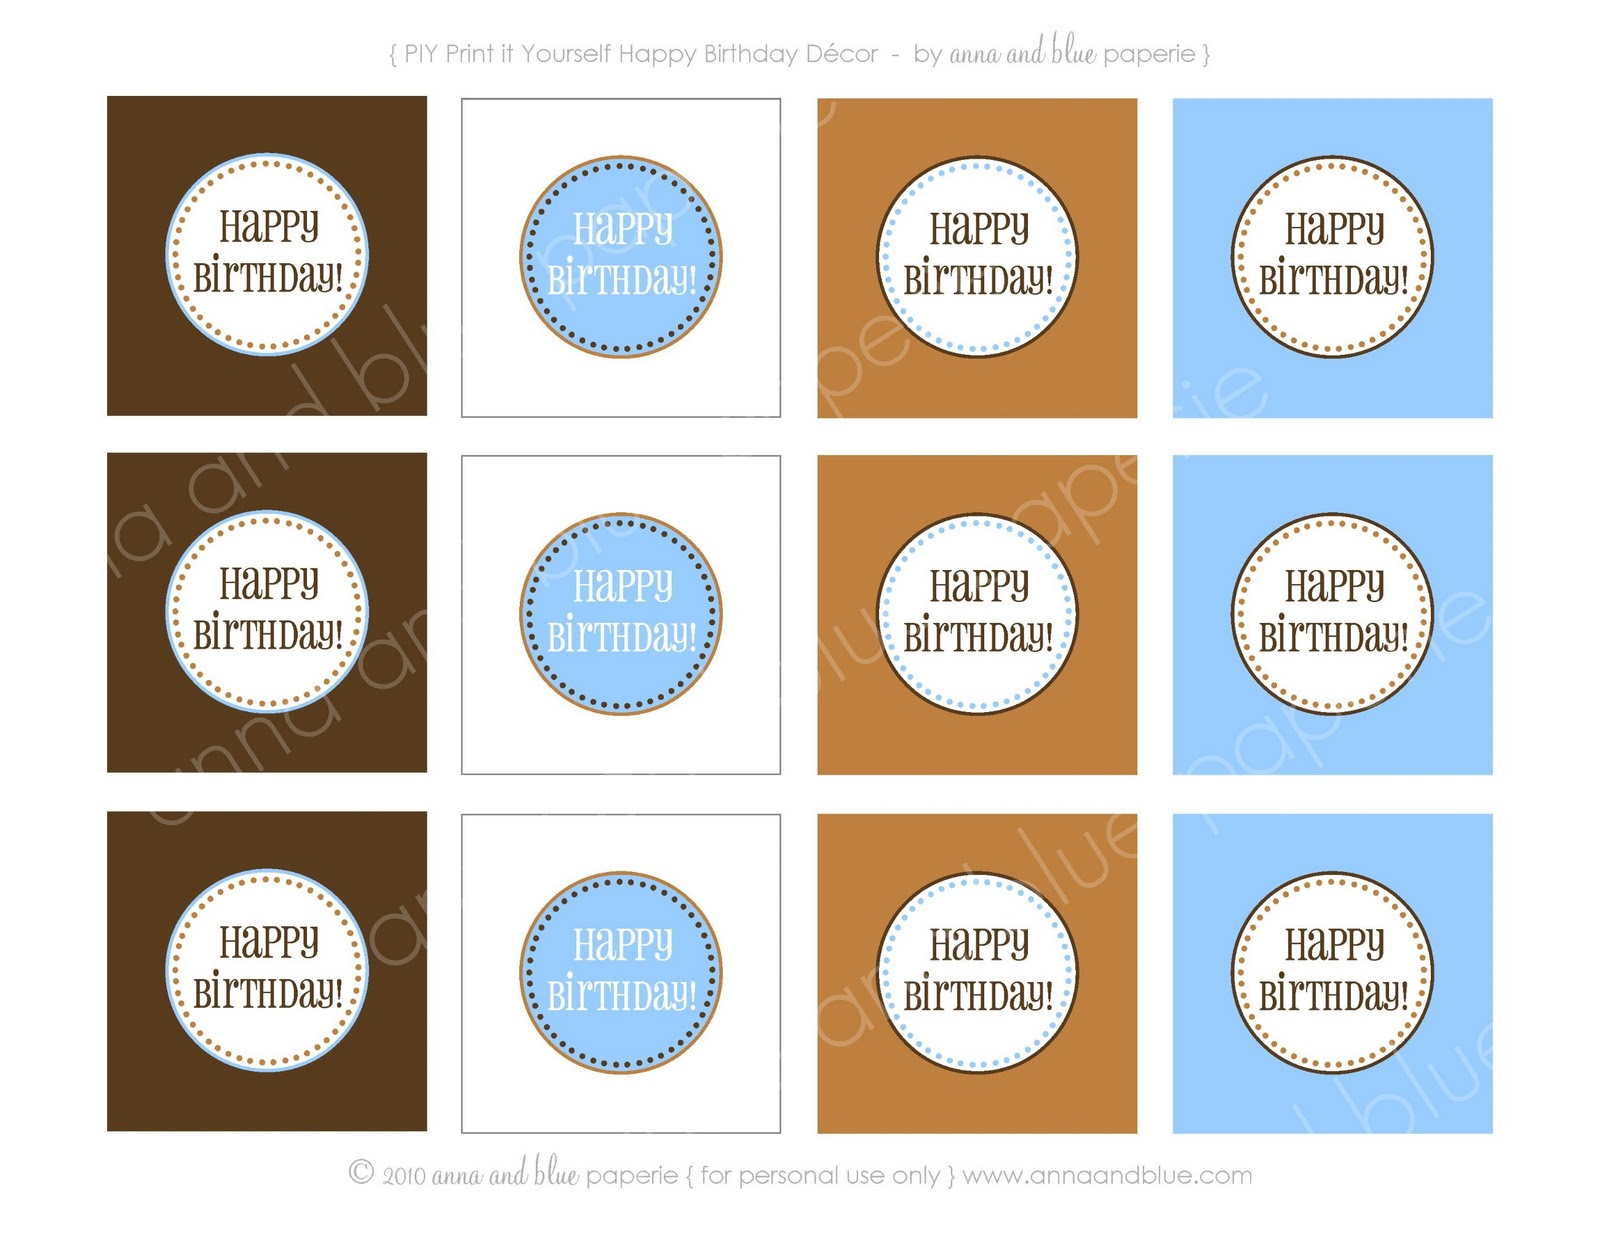 happy birthday labels free printable ; anna+and+blue+paperie+birthday+file+logo